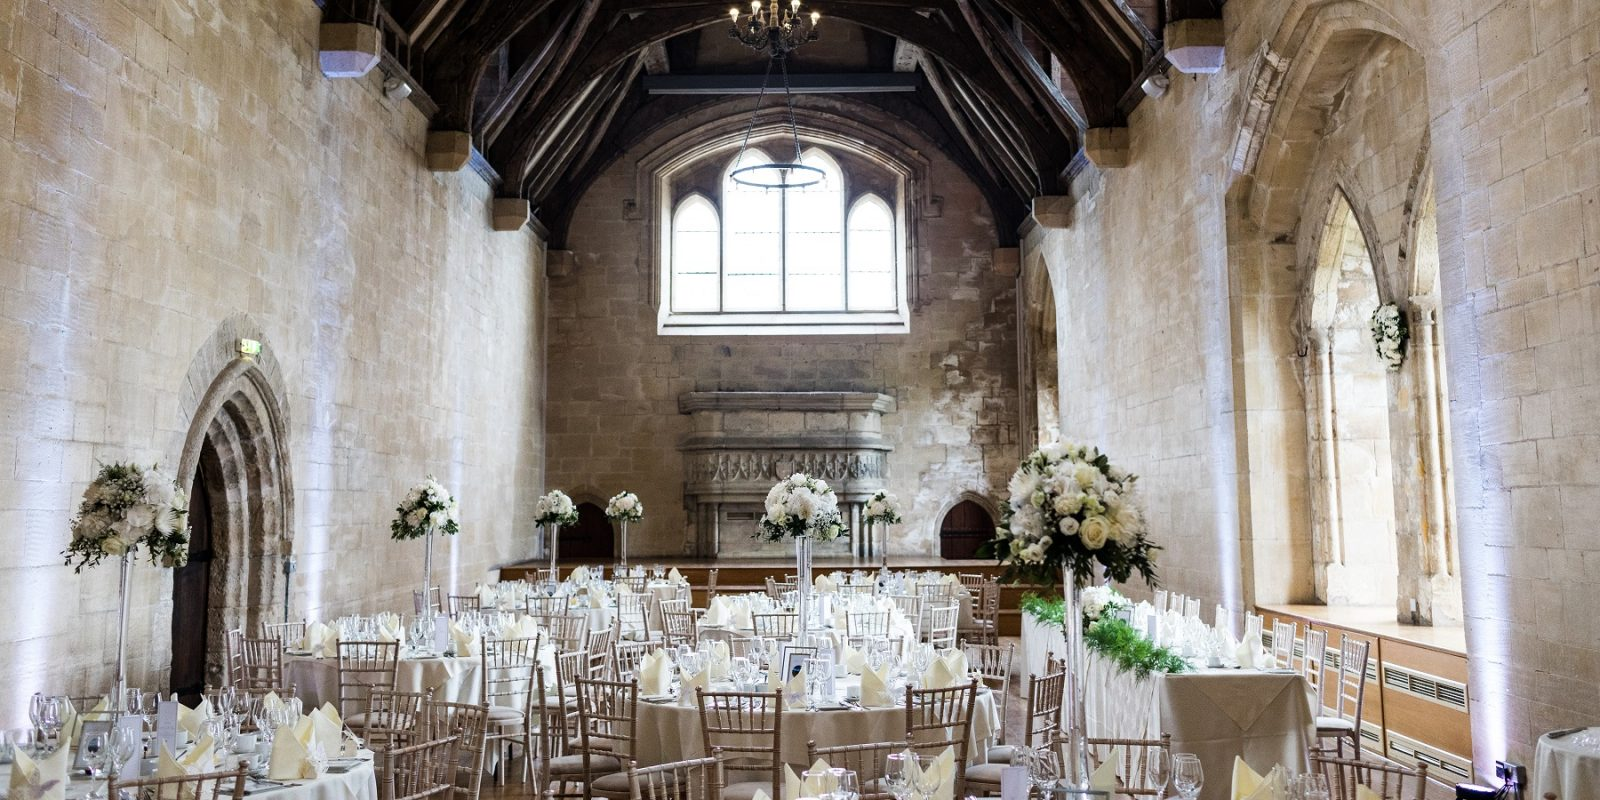 Sacha Miller - South Wales wedding photographer at St Donat's Castle